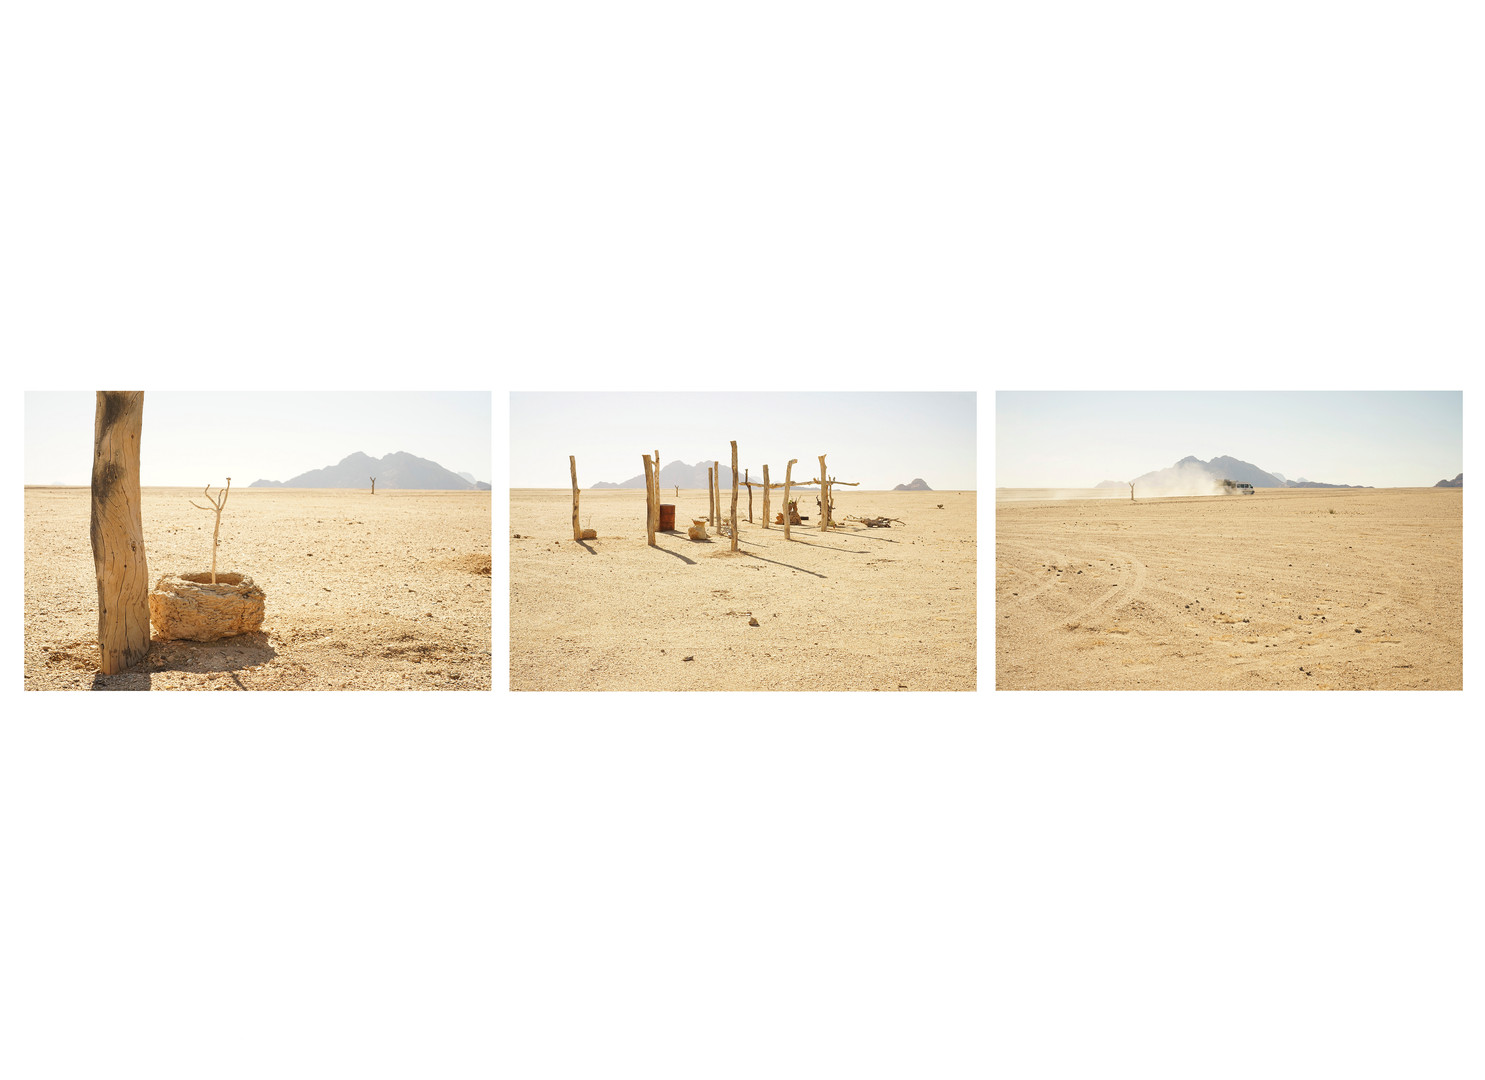 Margaret Courtney-Clarke | Hope in a Sandstorm, Namib Desert, July 2018 | 2018 | Giclée Print on Hahnemühle Photo Rag Paper | 33.5 x 50.5 cm Each | Edition of 6 + 2 AP